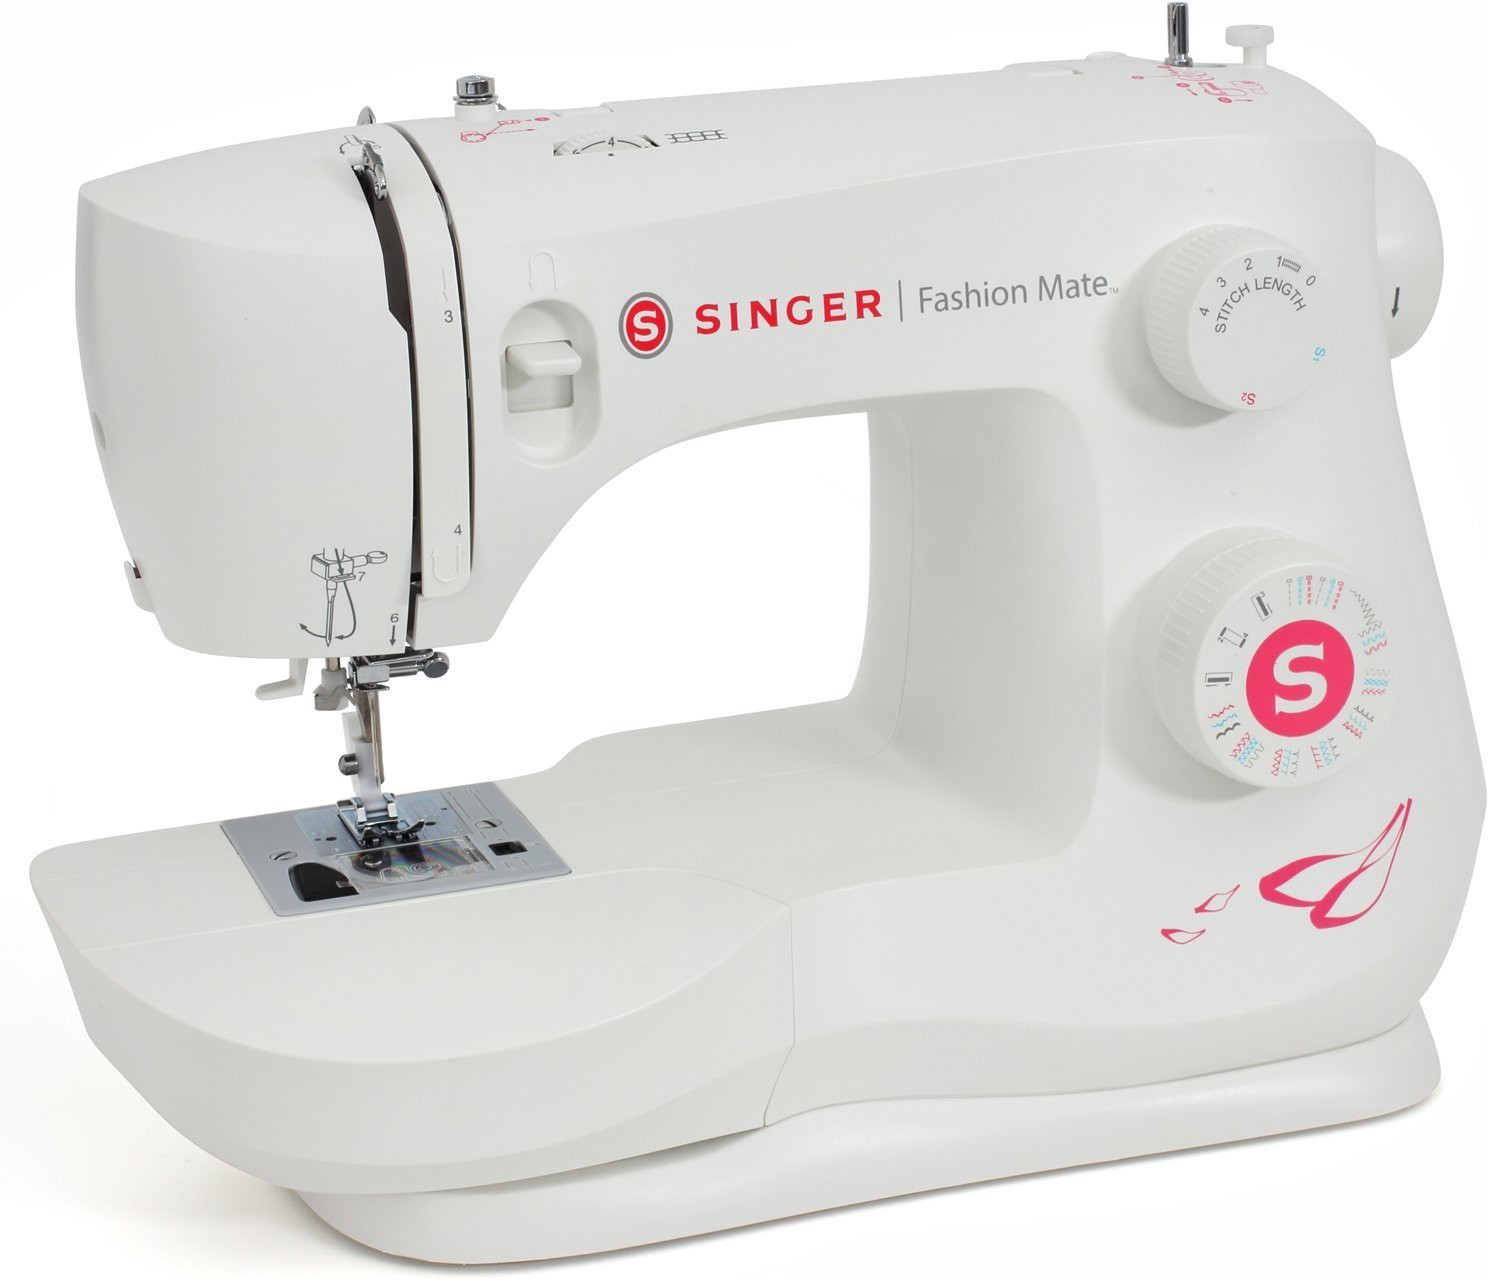 Singer Fashion Mate 3333 Electric Sewing Machine( Built-in Stitches 23)